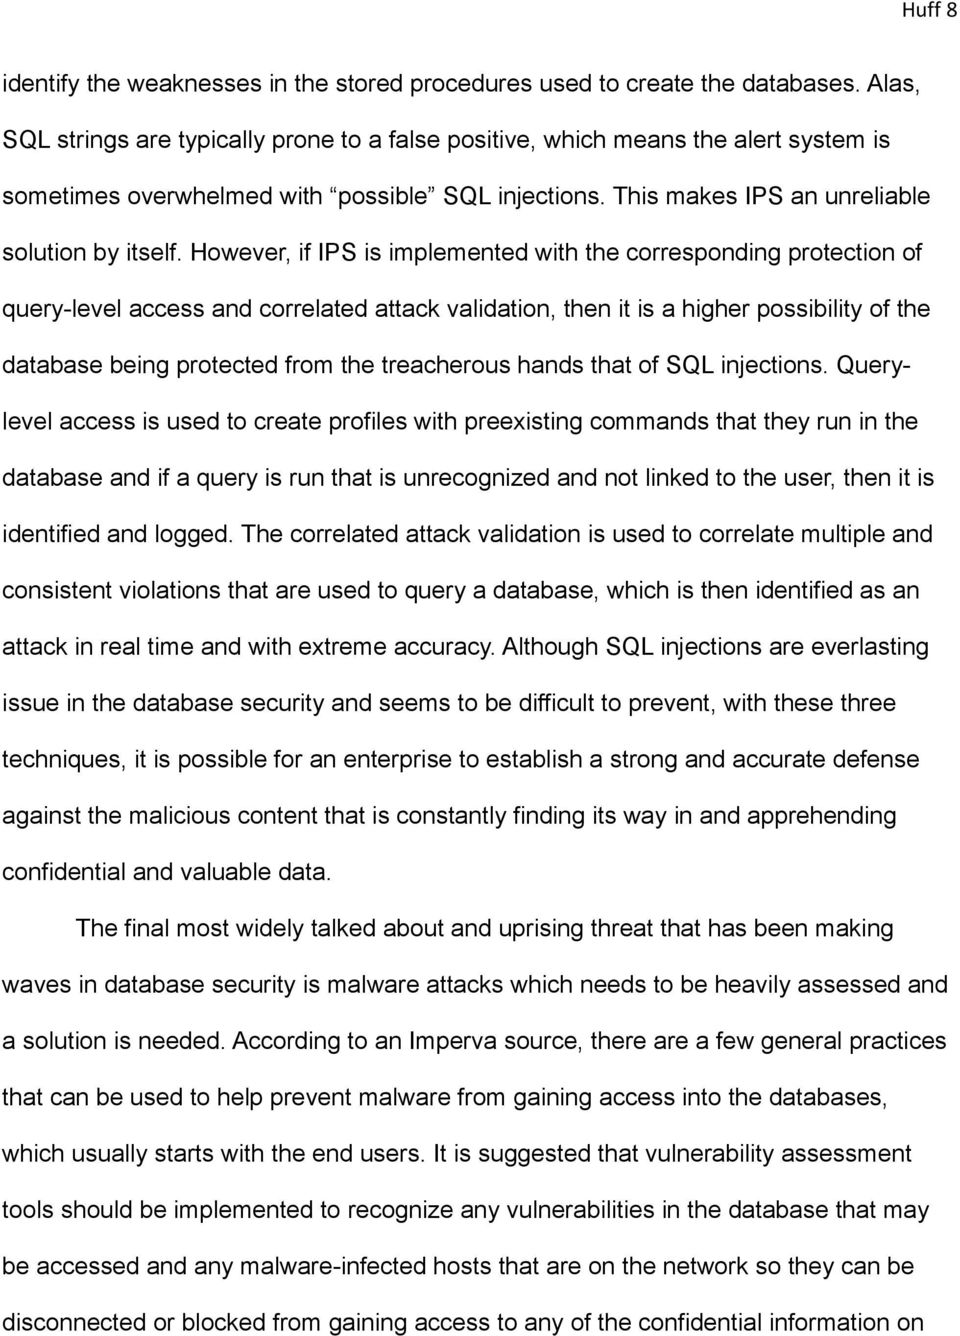 However, if IPS is implemented with the corresponding protection of query-level access and correlated attack validation, then it is a higher possibility of the database being protected from the